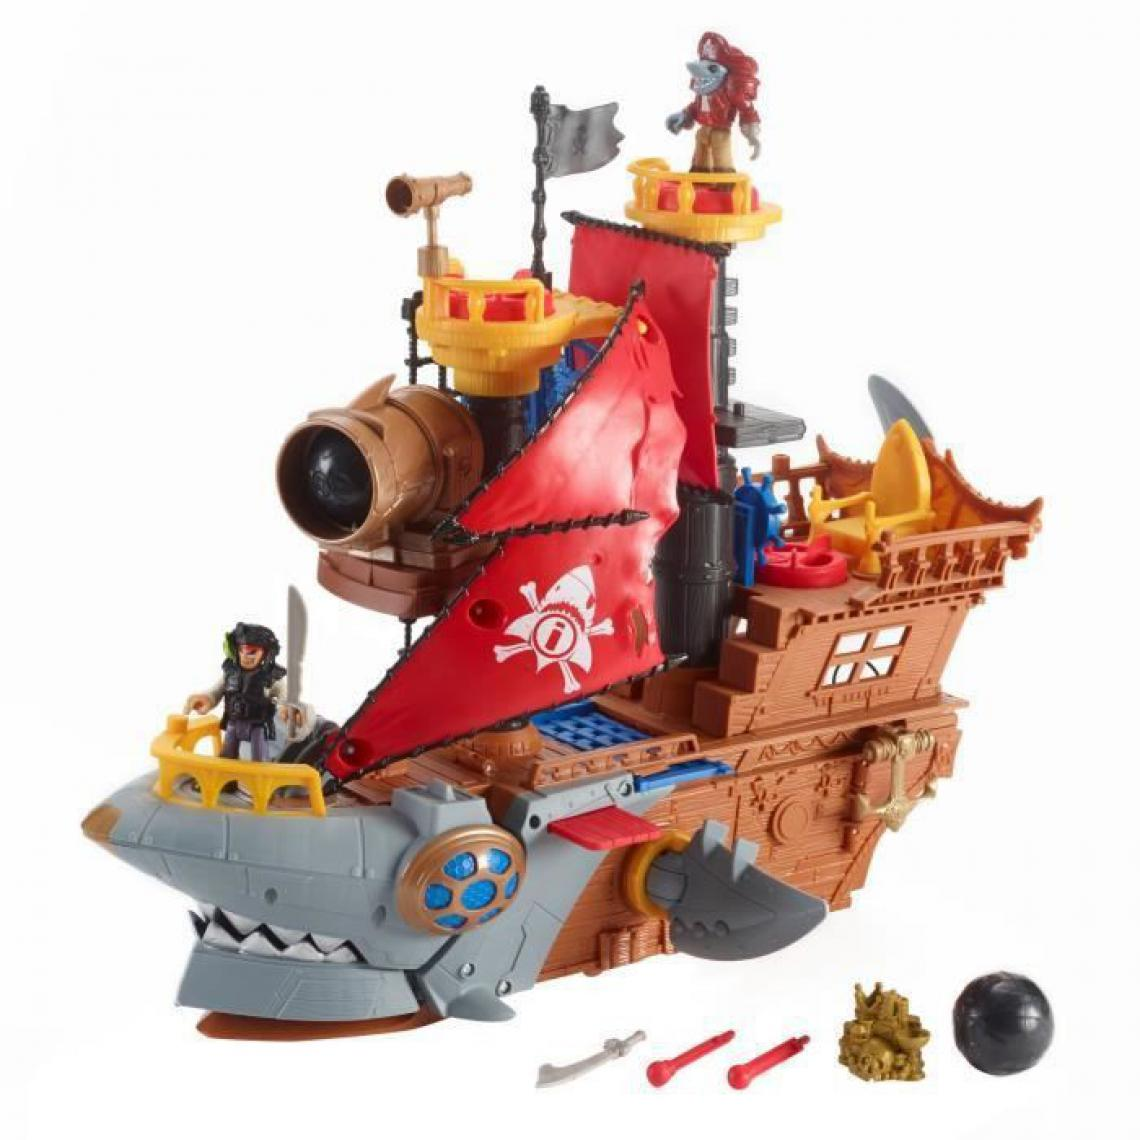 Fisher Price FISHER-PRICE Imaginext Bateau Pirate Requin - 3 ans et +